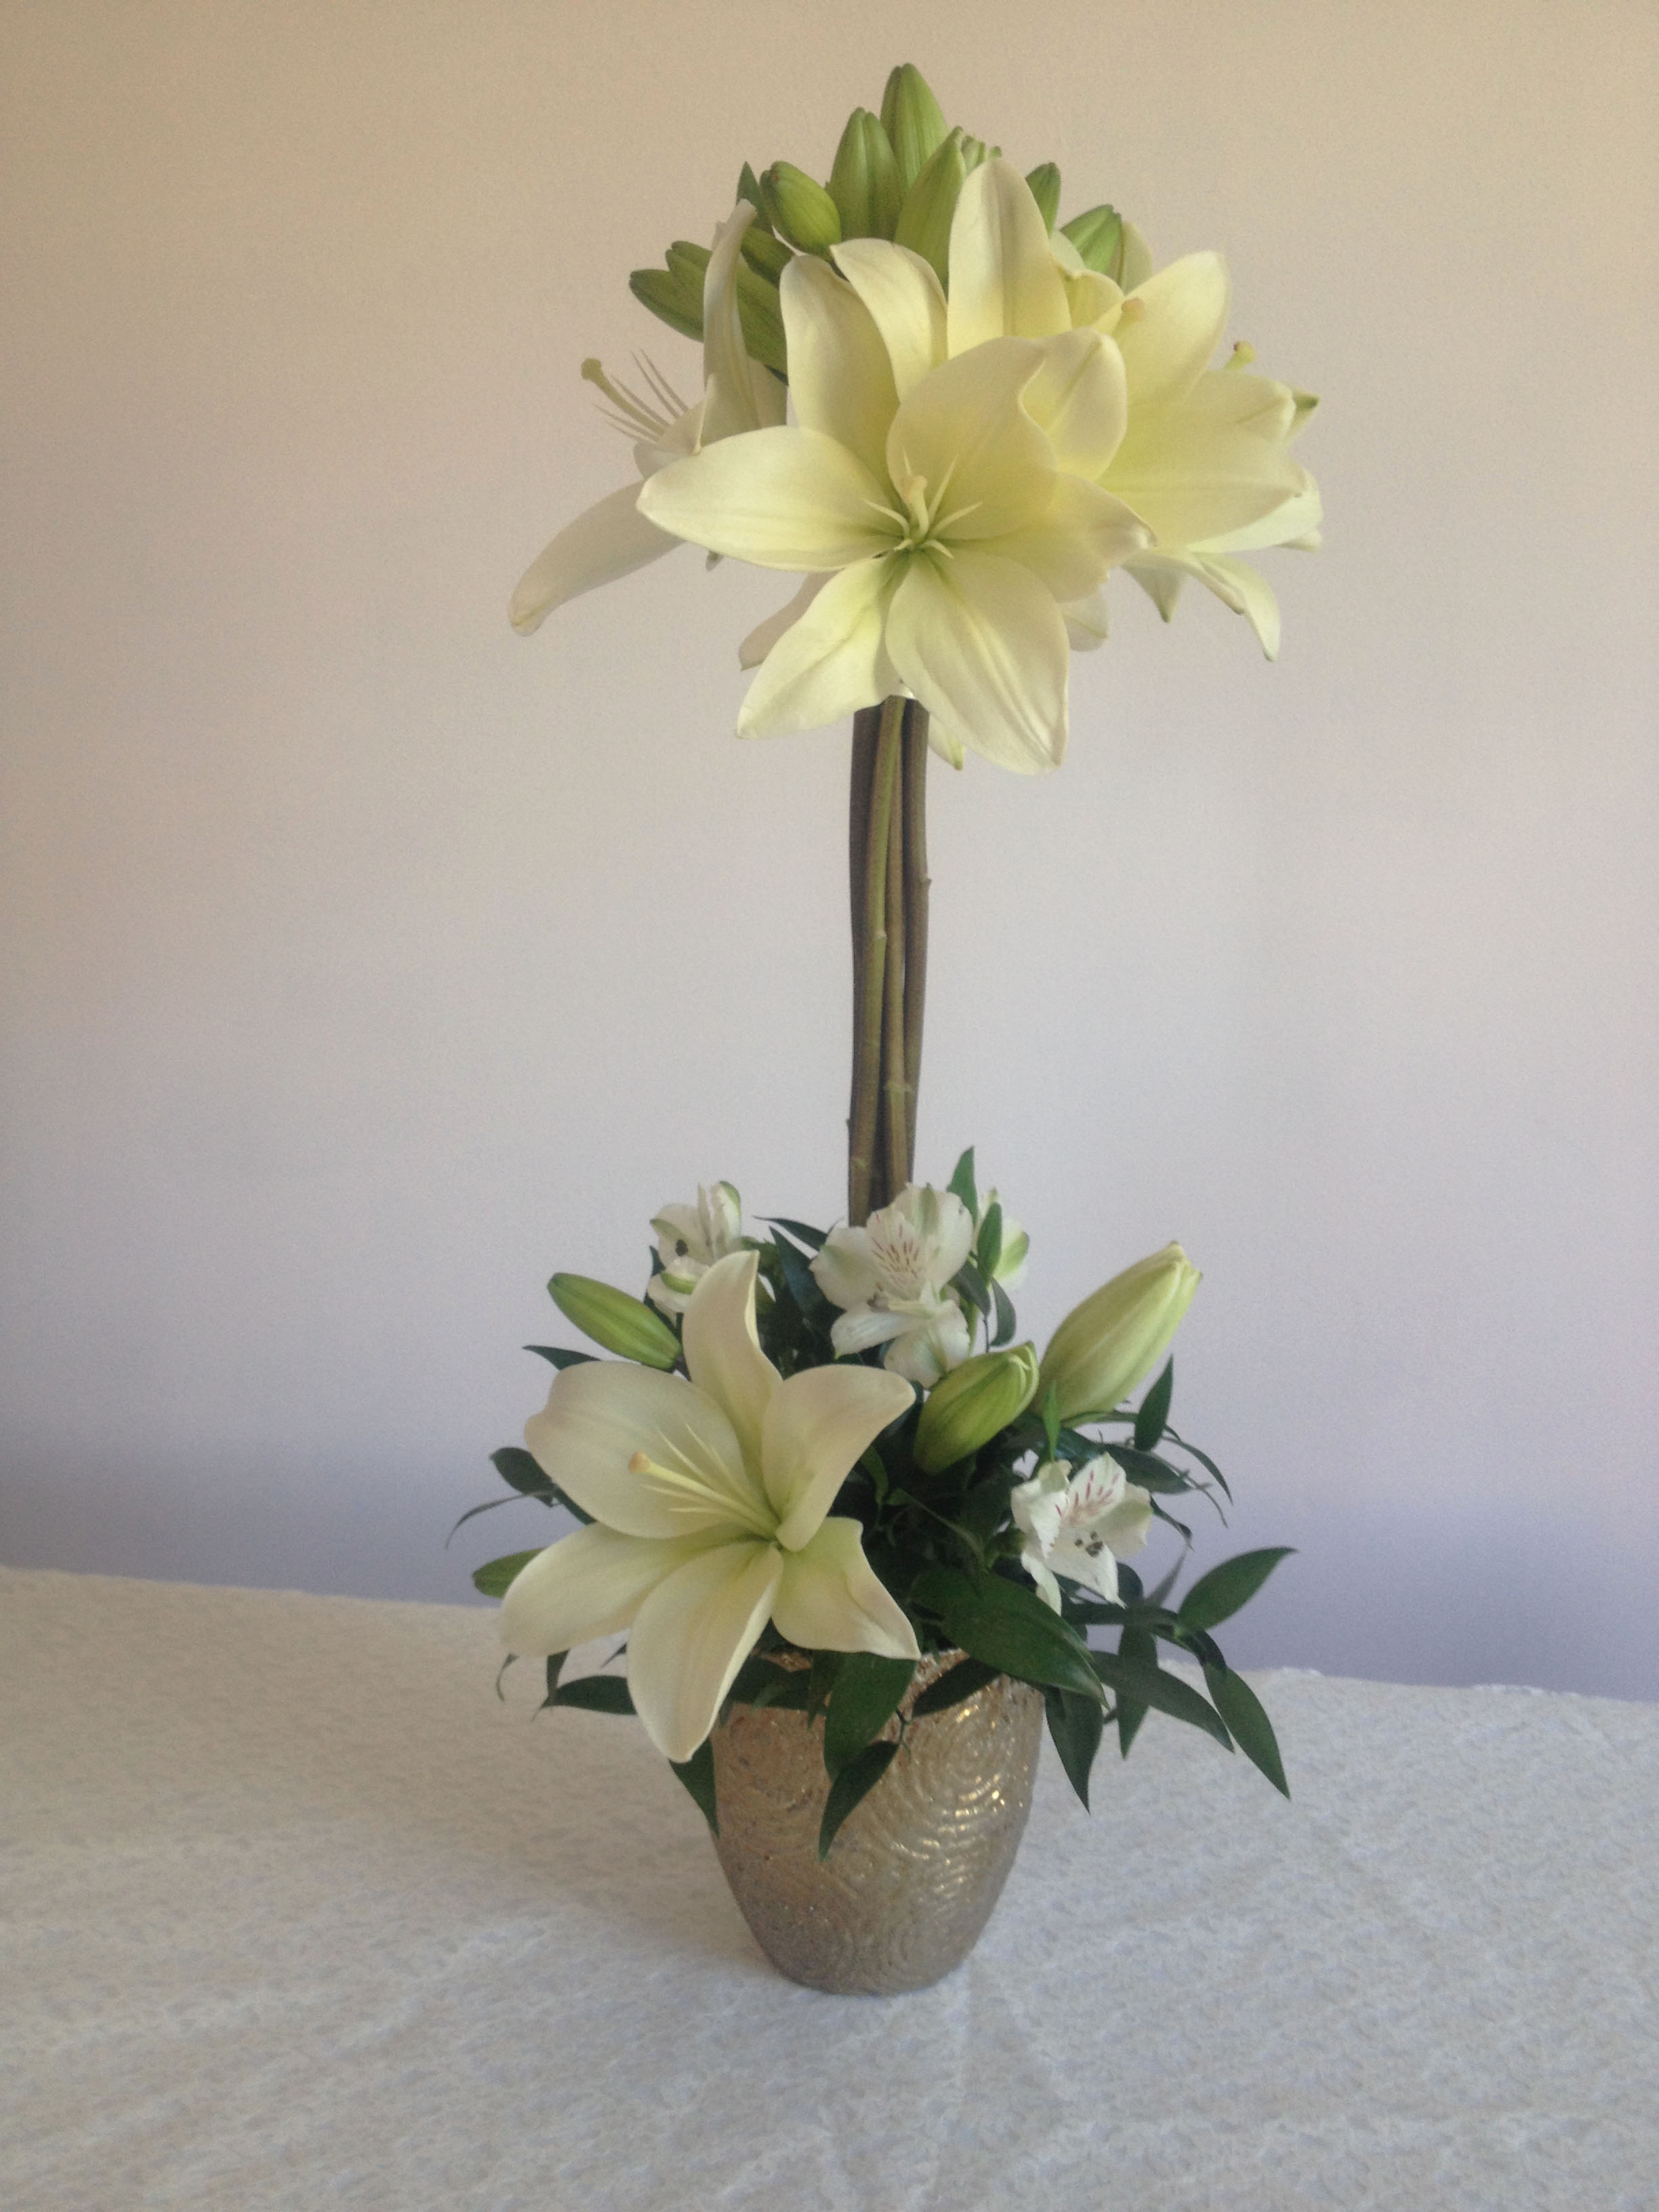 Evelisa Floral & Design: Lily Topiary